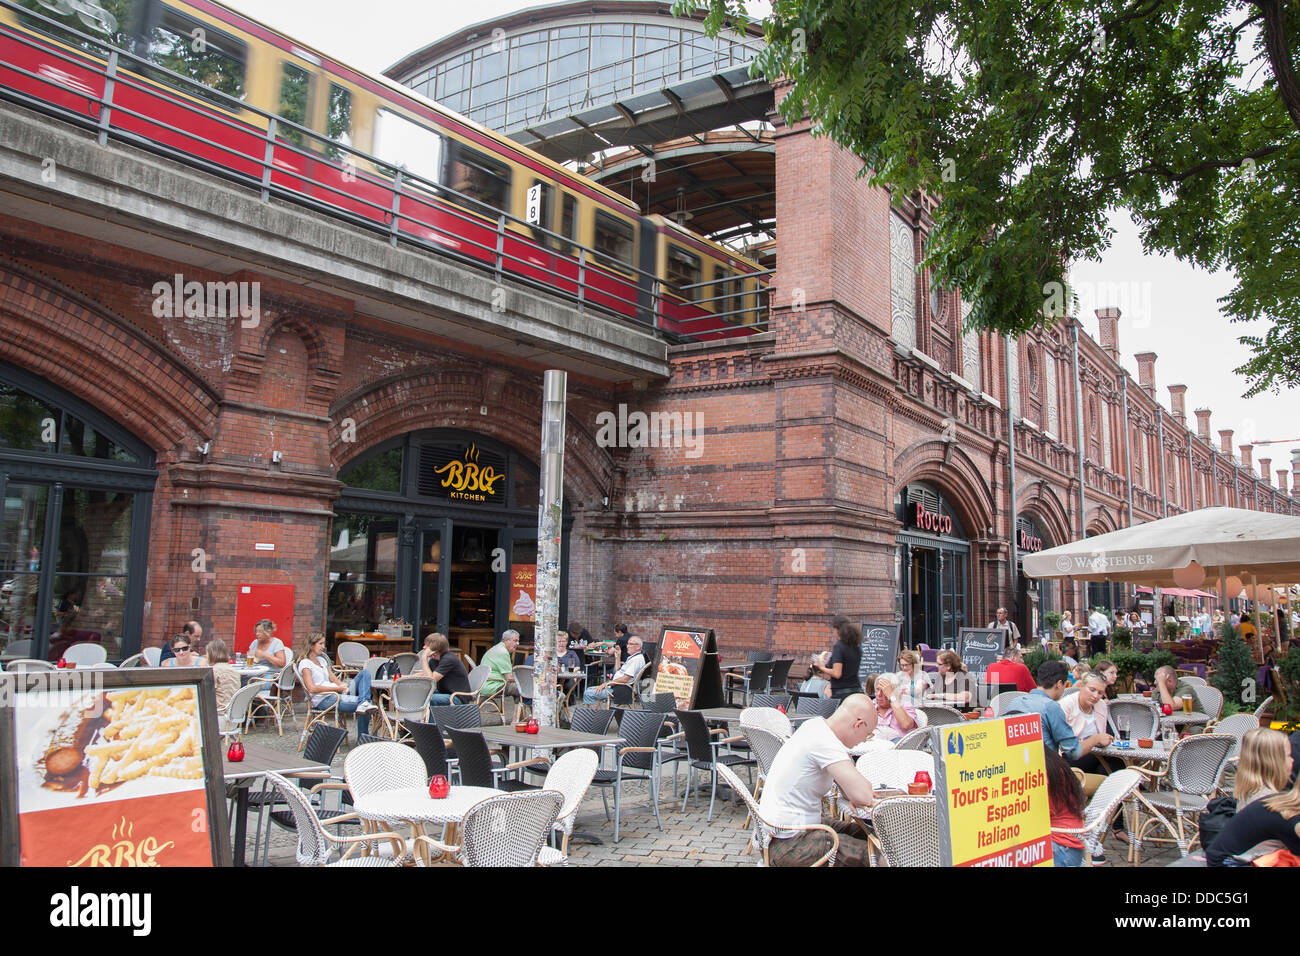 berlin hackescher markt station stockfotos berlin hackescher markt station bilder alamy. Black Bedroom Furniture Sets. Home Design Ideas